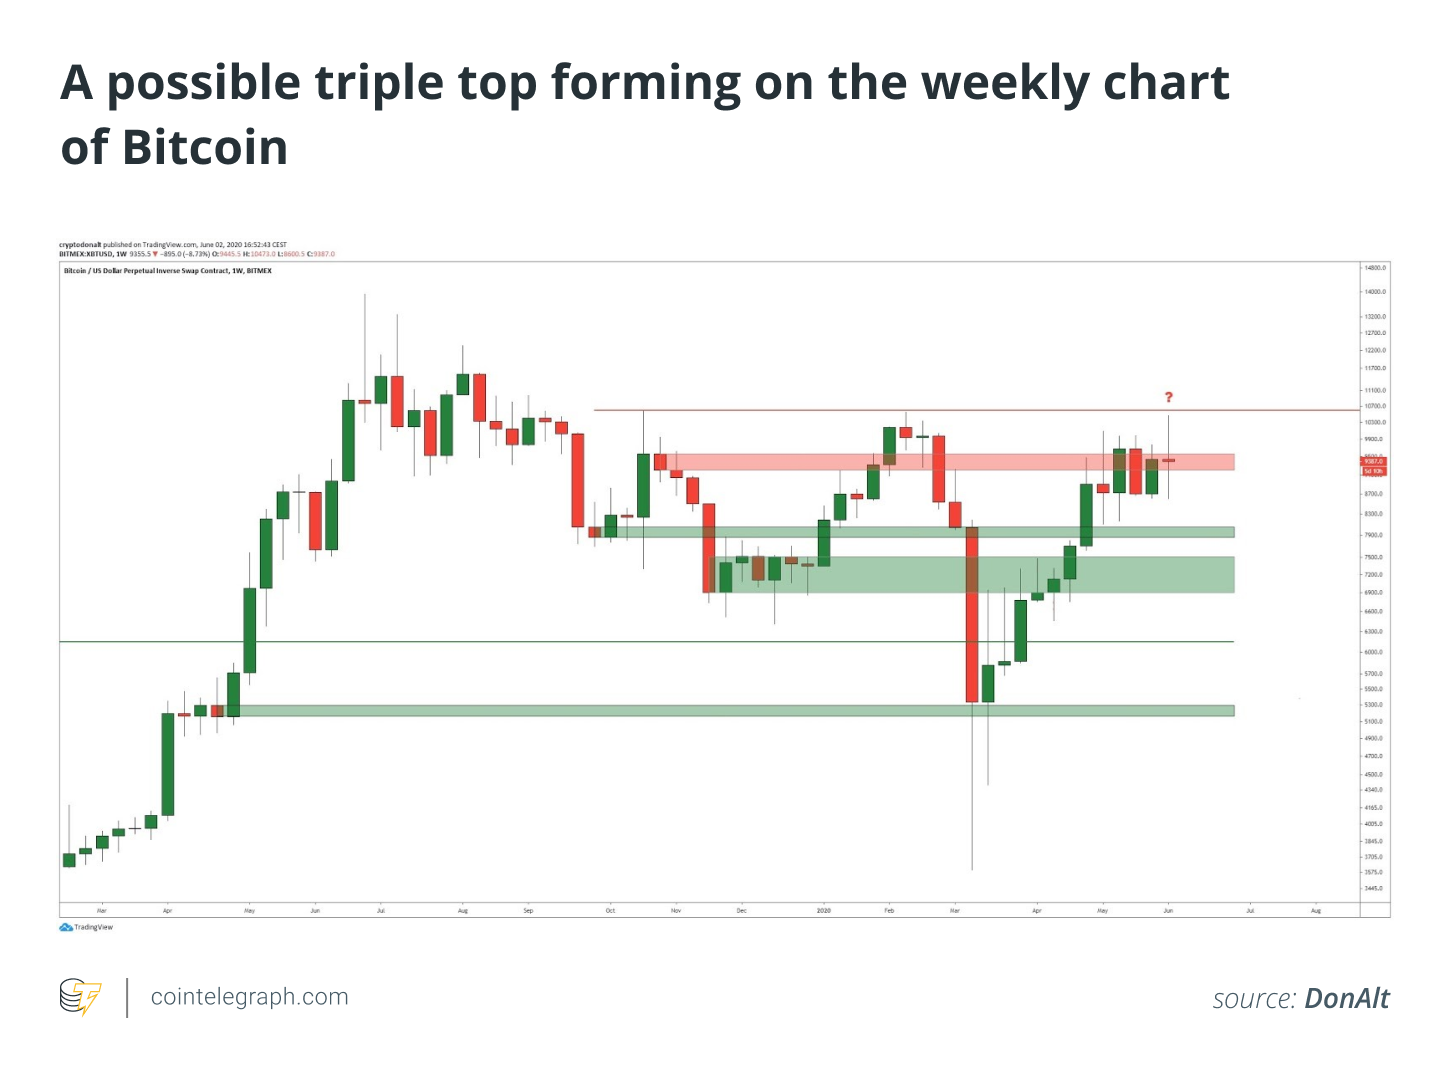 A possible triple top forming on the weekly chart of Bitcoin